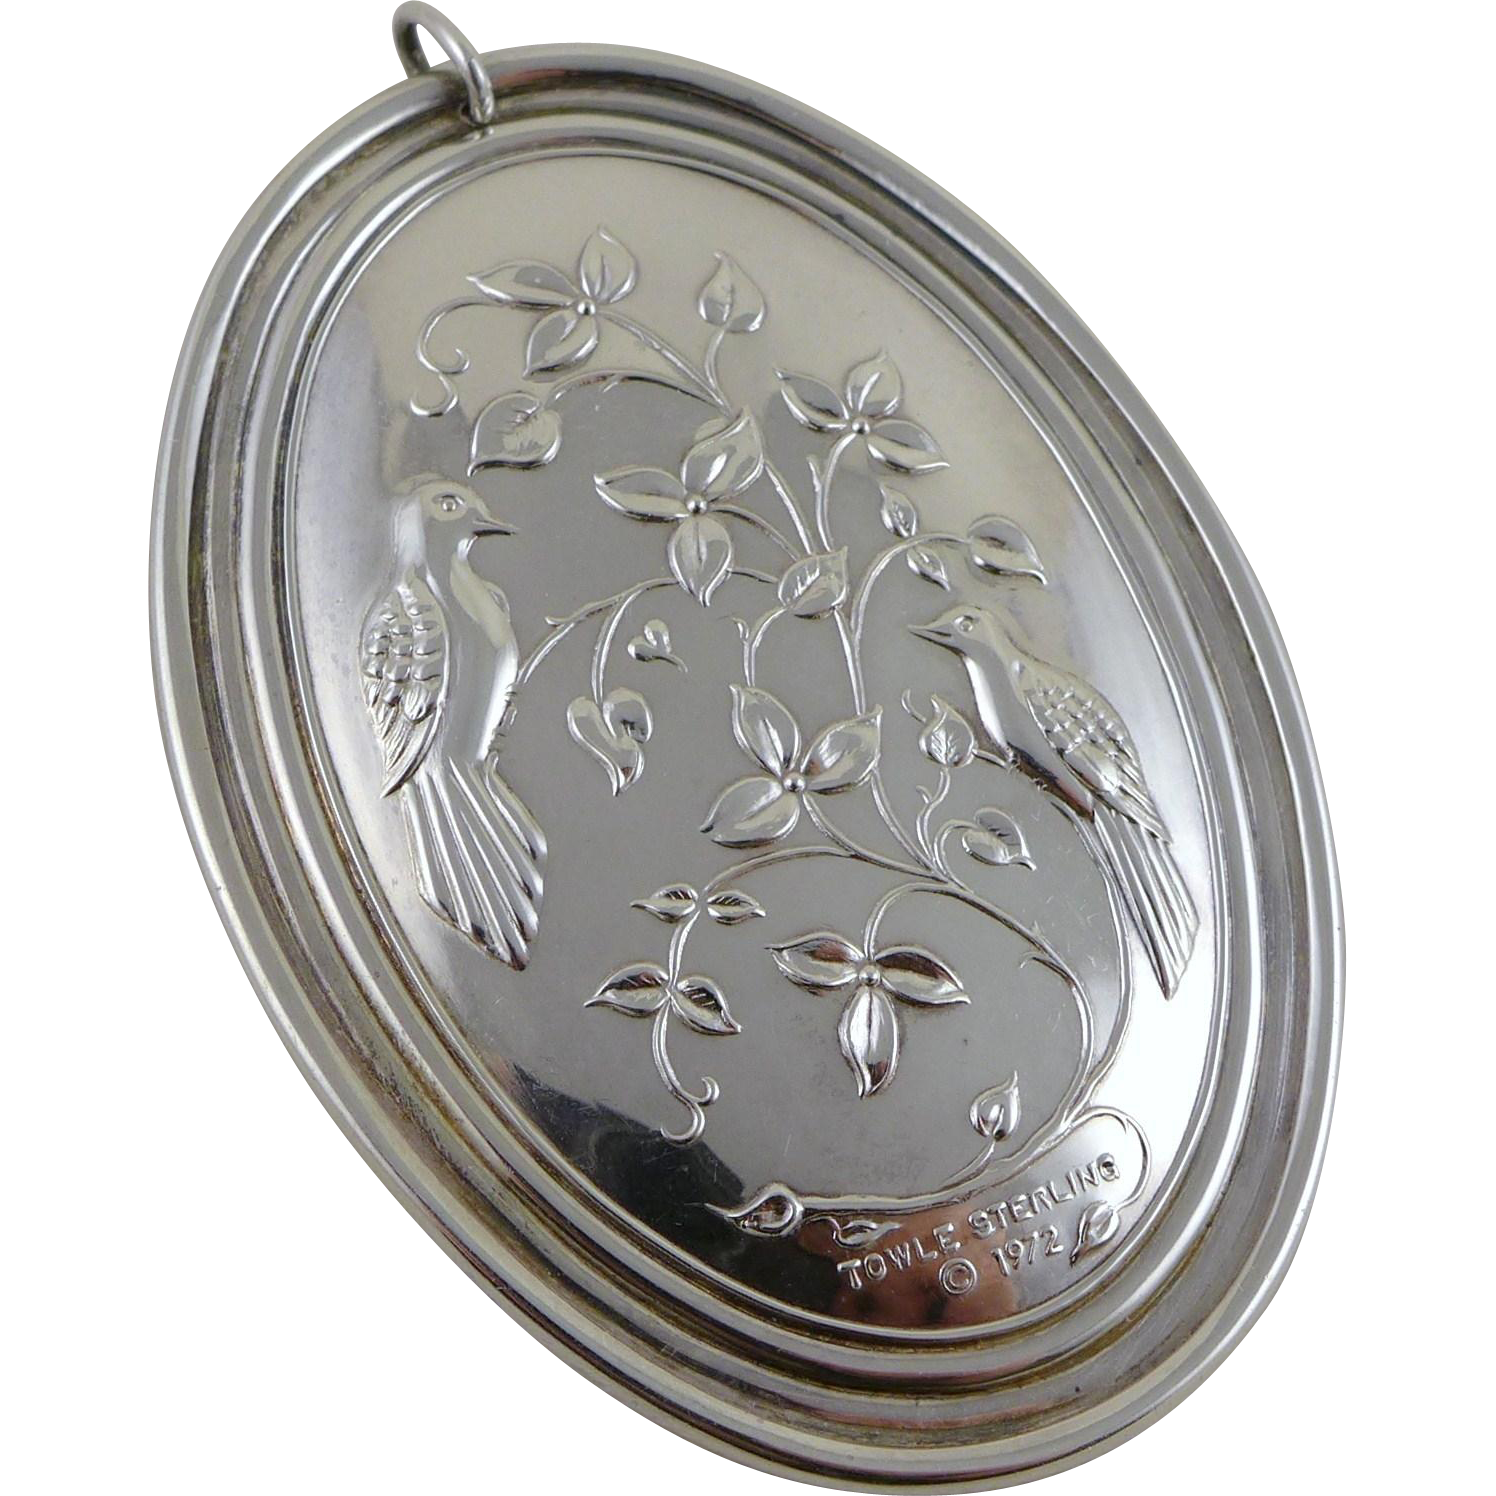 Vintage Towle Sterling Silver Ornament / Pendant 1972 - The Twelve Days of Christmas Series